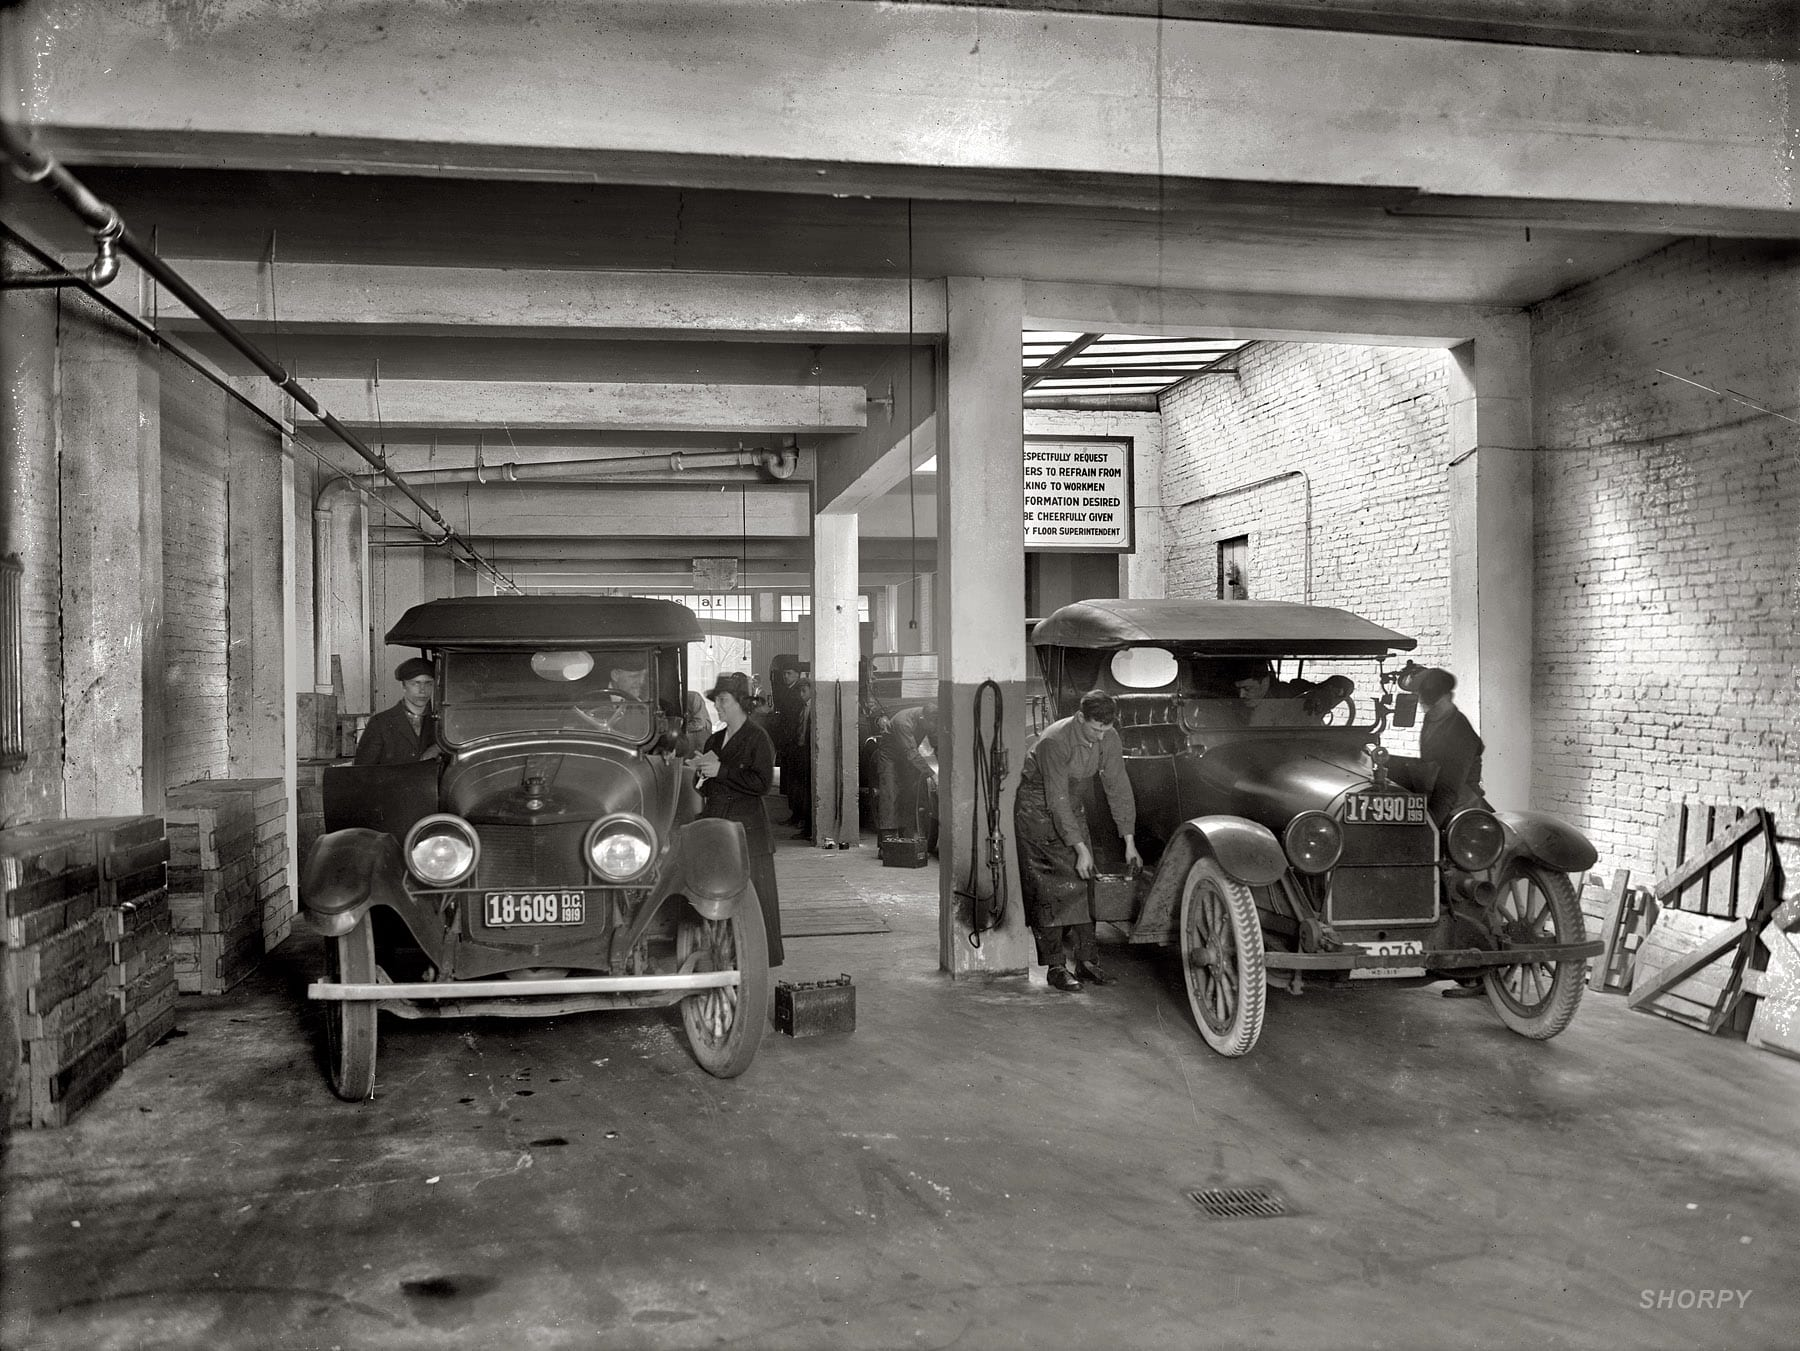 """District of Columbia, 1919. Willard Service Station, Washington Battery Co., 1623 L Street. The sign: """"We respectfully request customers to refrain from talking to workmen. Any information desired will be cheerfully given out by floor superintendent."""" National Photo Company glass negative."""